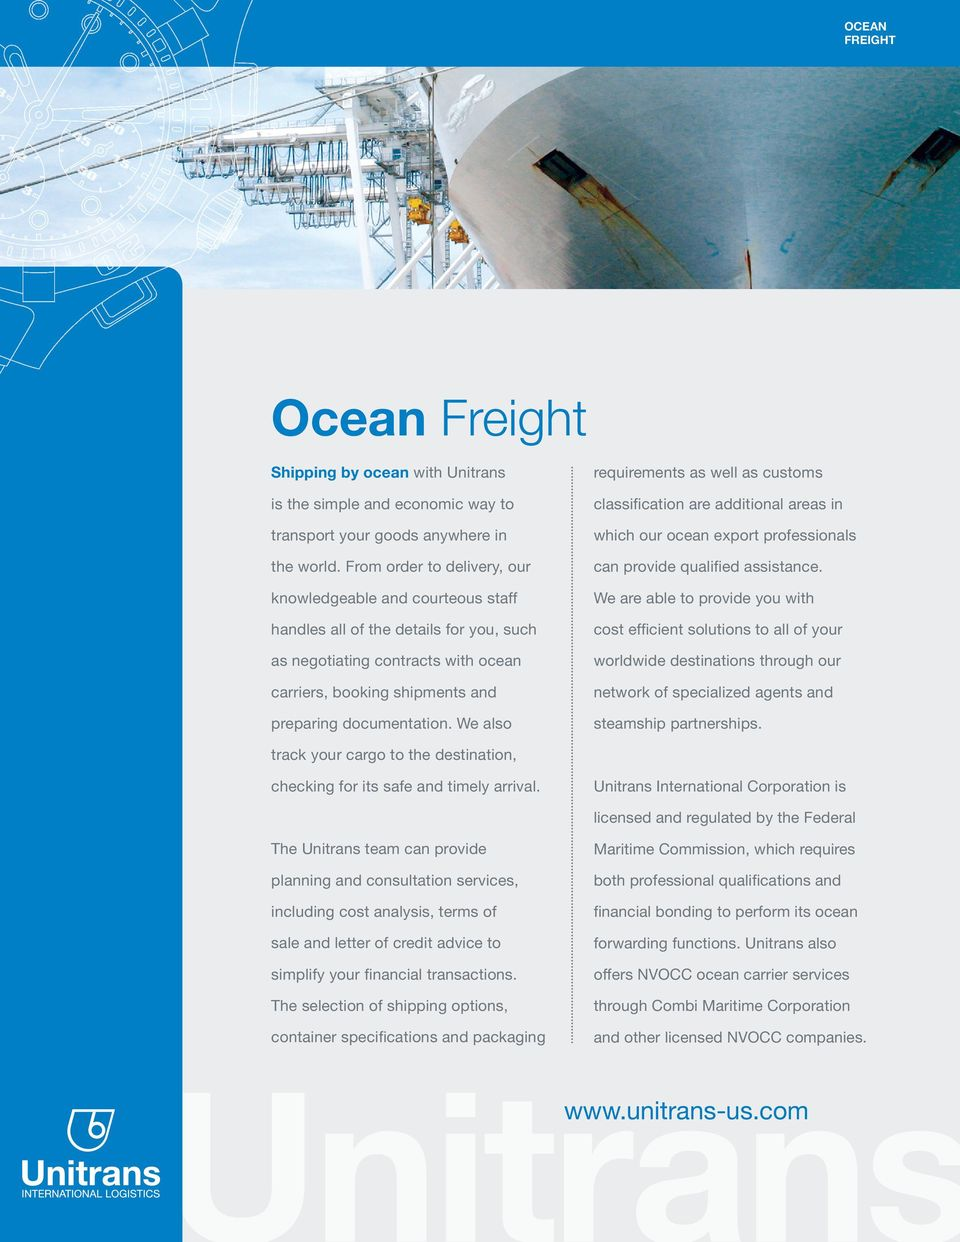 We also requirements as well as customs classification are additional areas in which our ocean export professionals can provide qualified assistance.